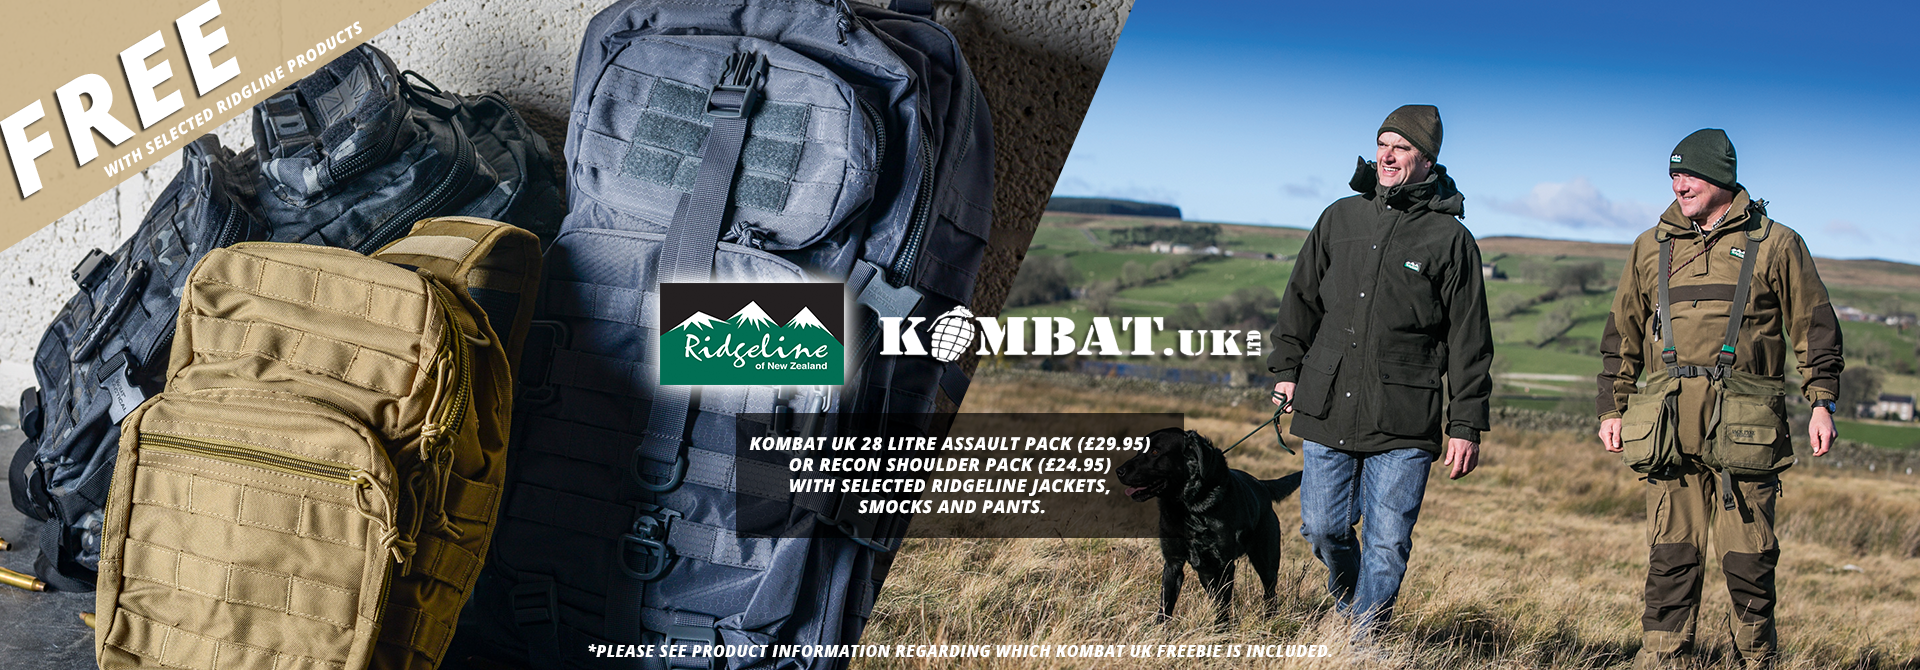 Ridgeline & Kombat UK